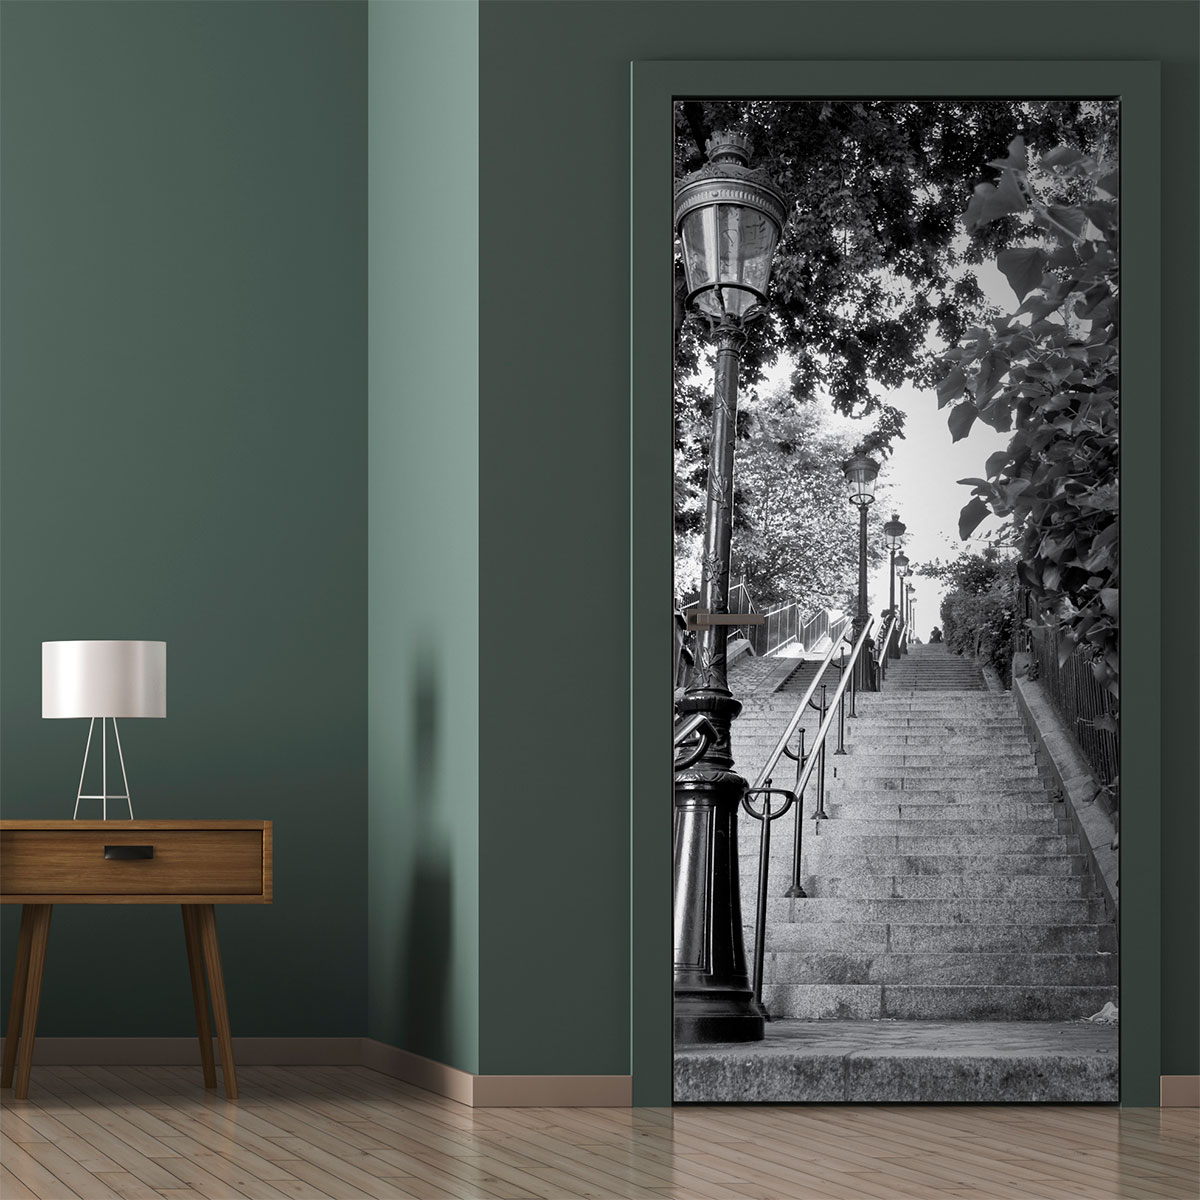 Sticker porte 204 x 83 cm escalier parisien stickers for Stickers de porte